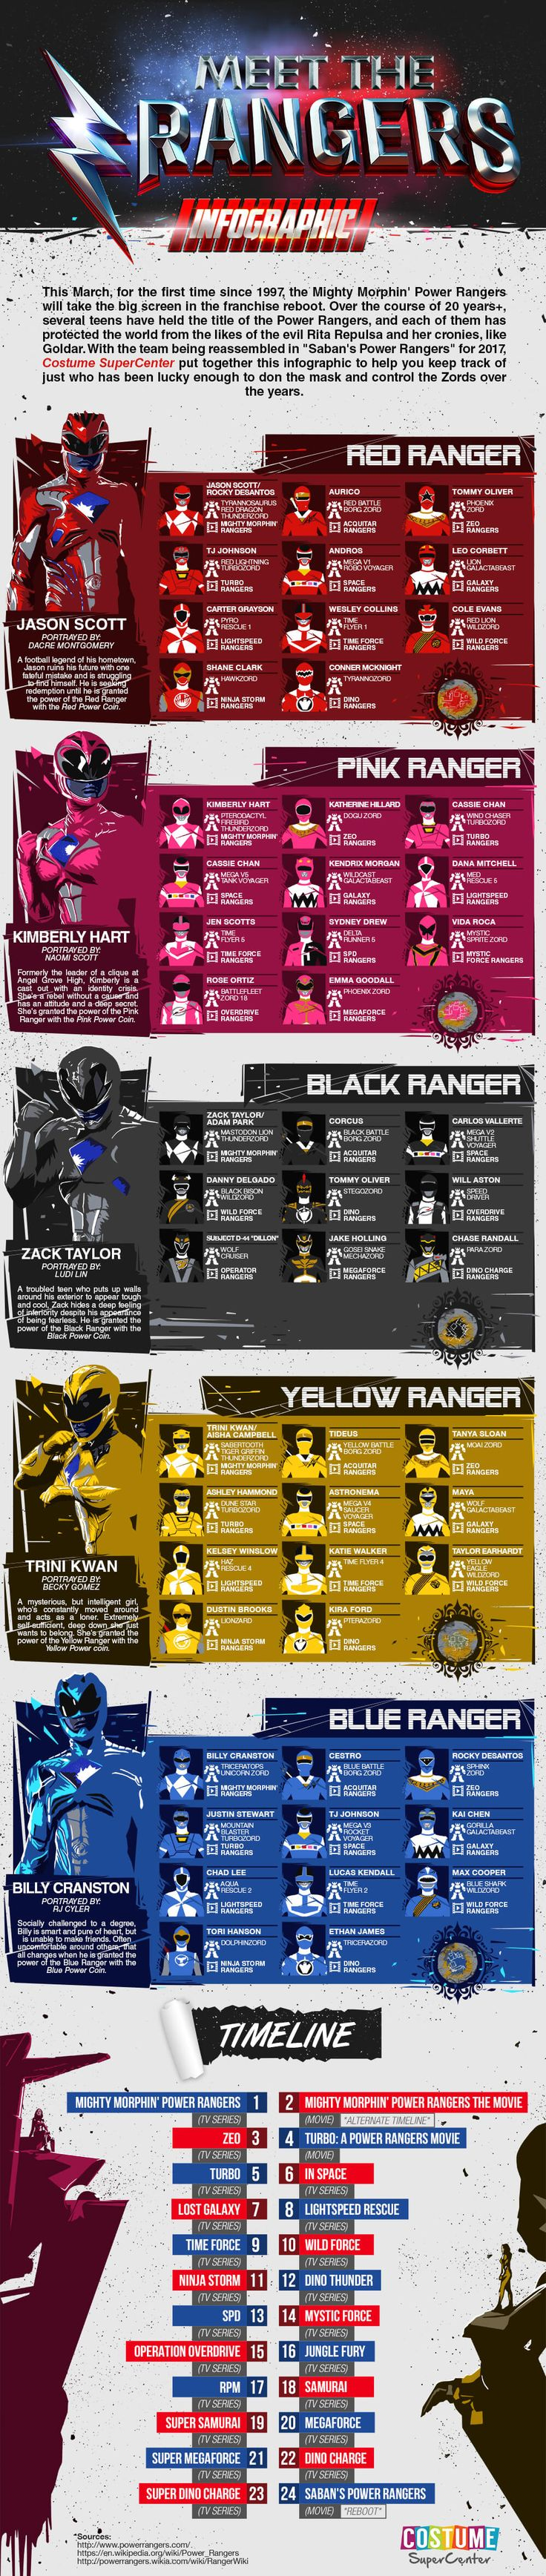 meet-the-rangers-infographic-1000x